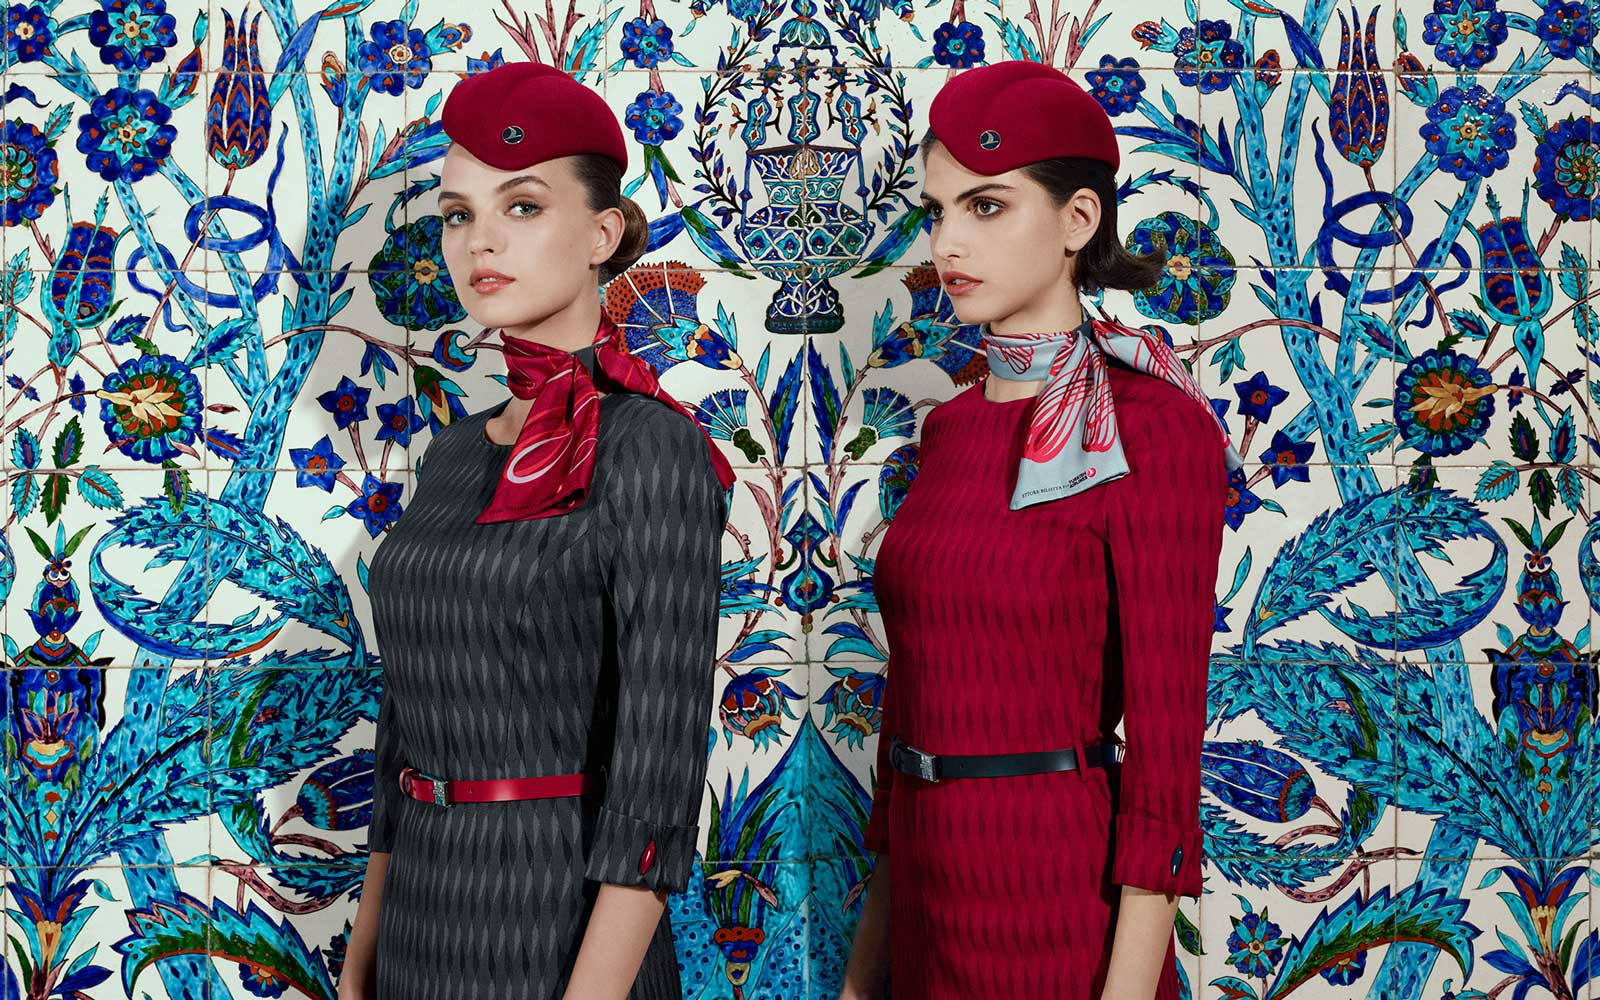 Turkish Airlines' New Uniforms Might Just Make It the Most Fashionable Airline